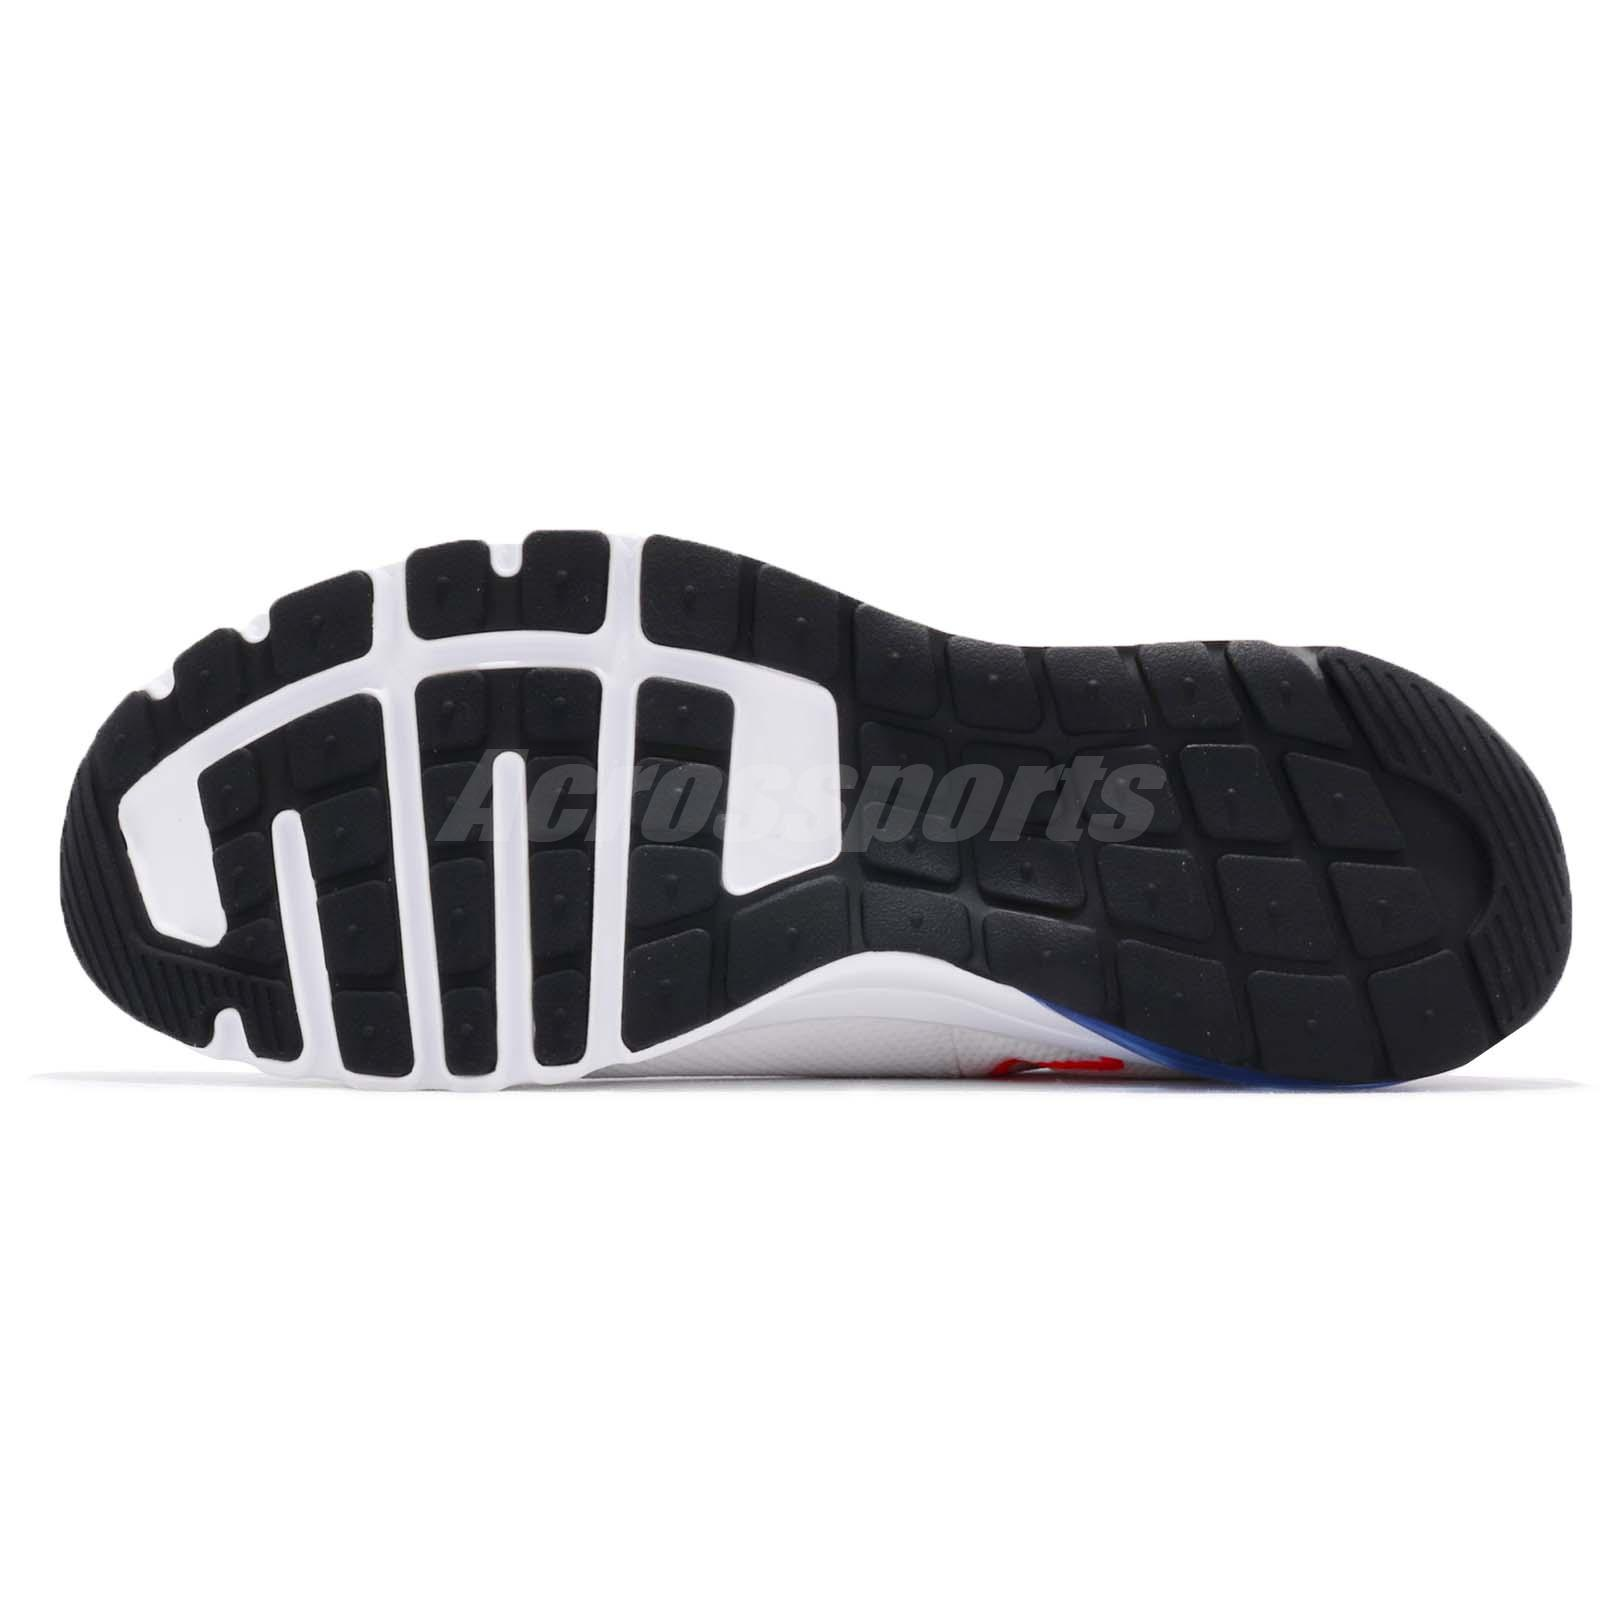 new arrivals 4e0aa 15fd7 Nike Air Max Flair 50 Ultramarine White Solar Red Blue Men Shoes ...